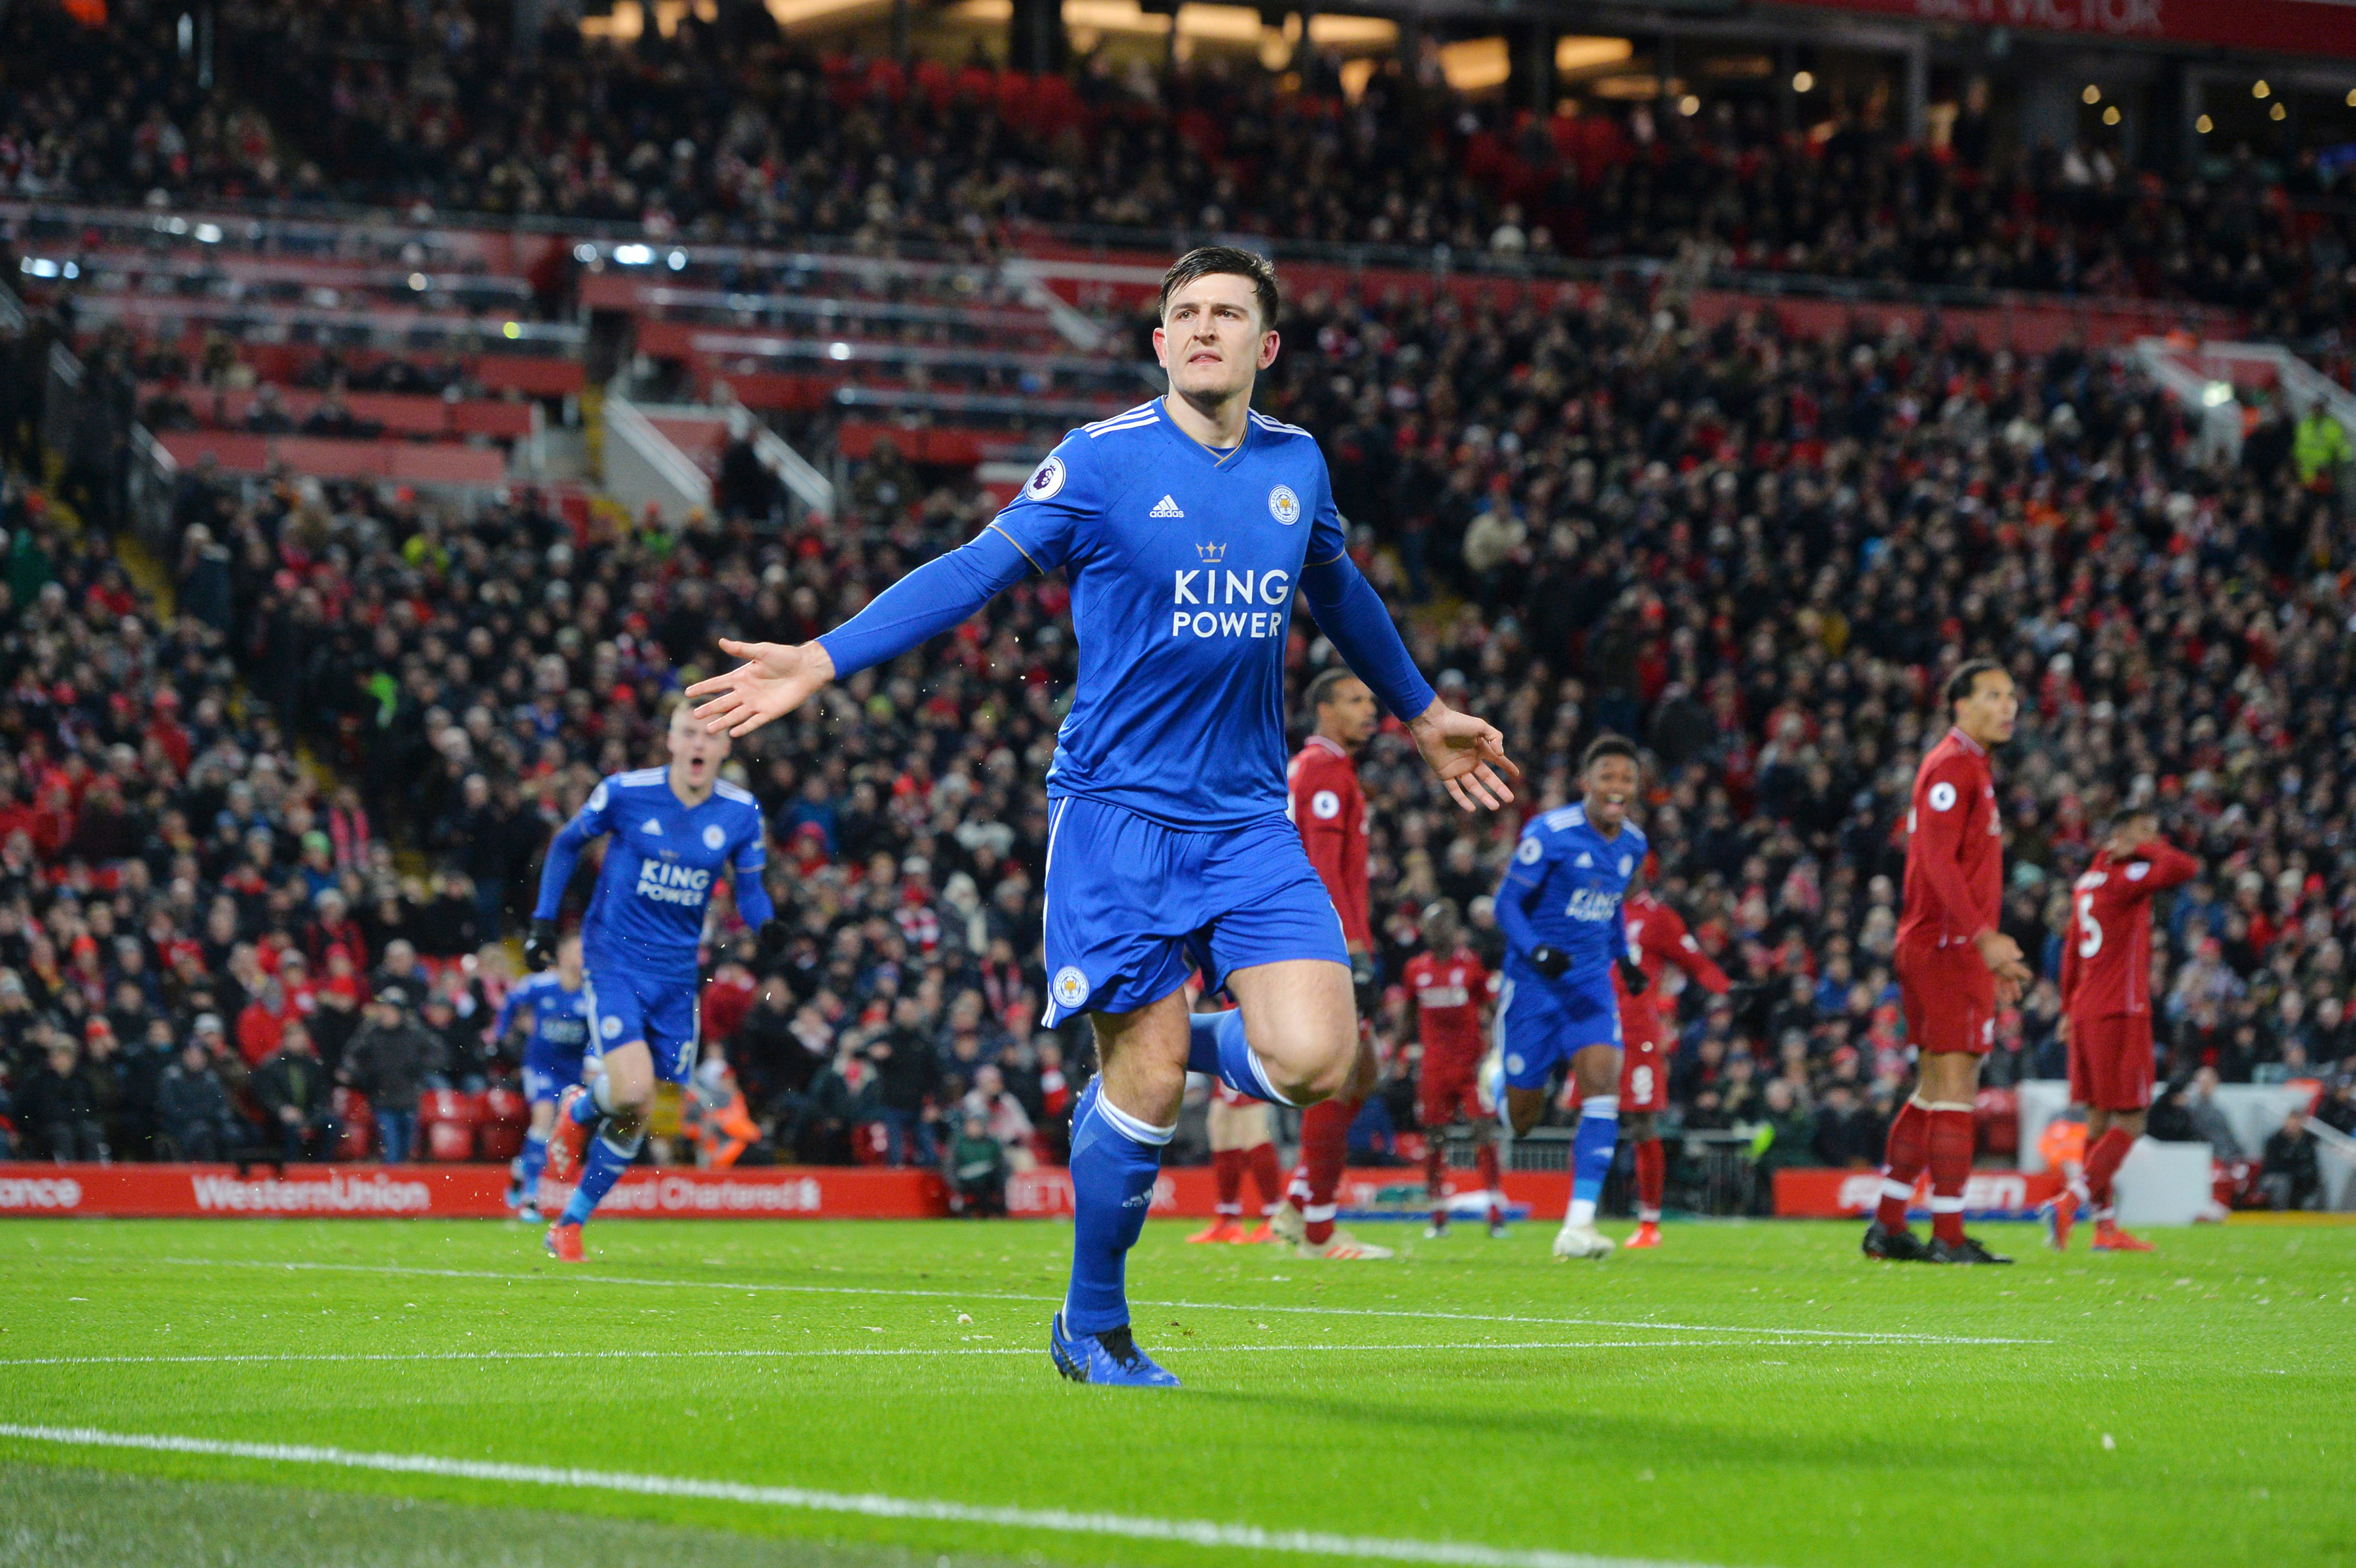 maguire strike earns point at leaders liverpool maguire strike earns point at leaders